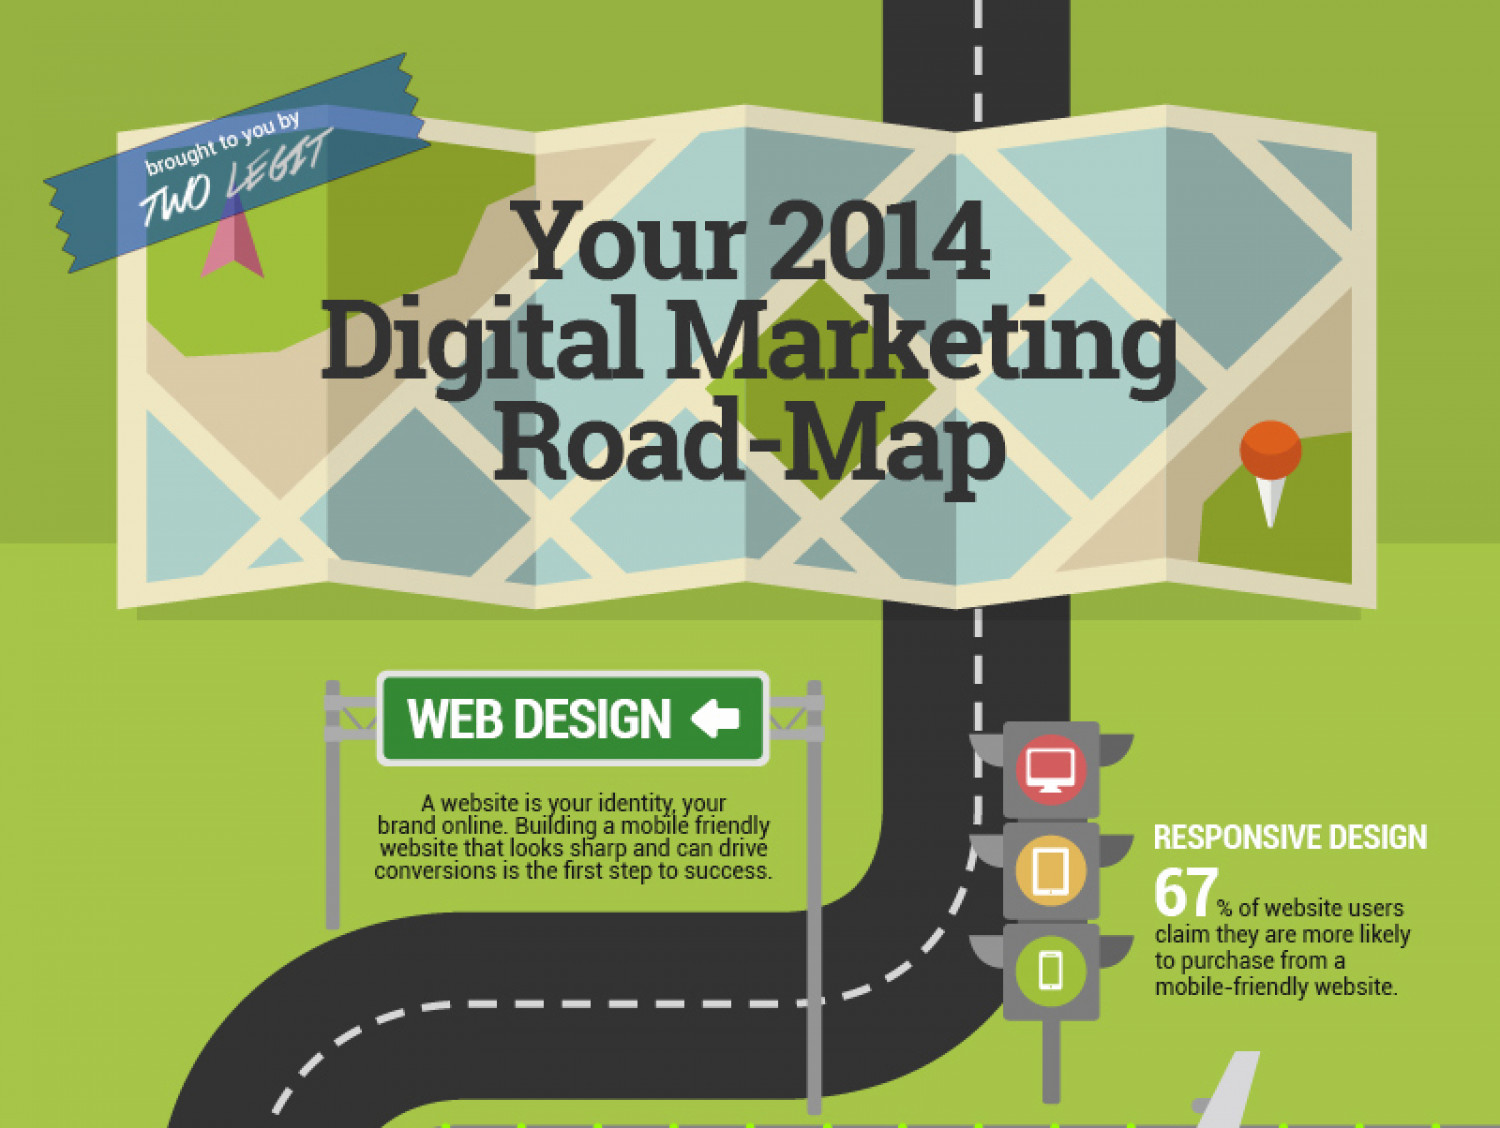 Your 2014 Digital Marketing Road-Map Infographic